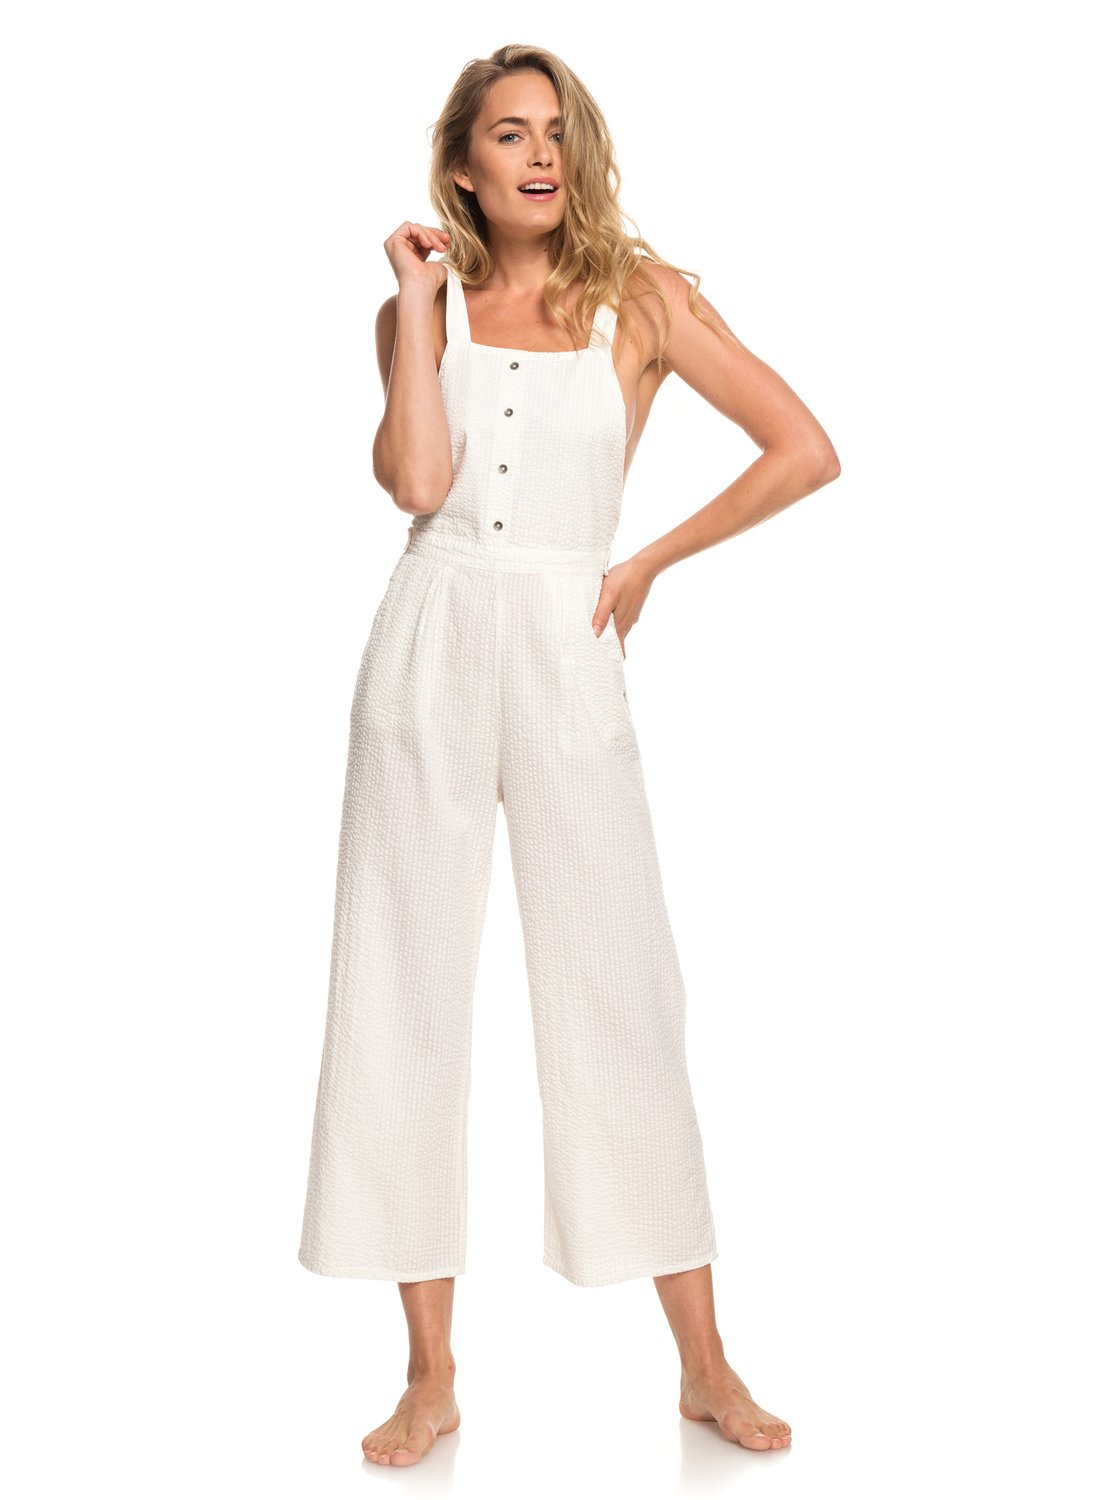 57e89b0bfe1a Image is loading Roxy-West-Cozy-Place-Strappy-Jumpsuit-ERJWD03301